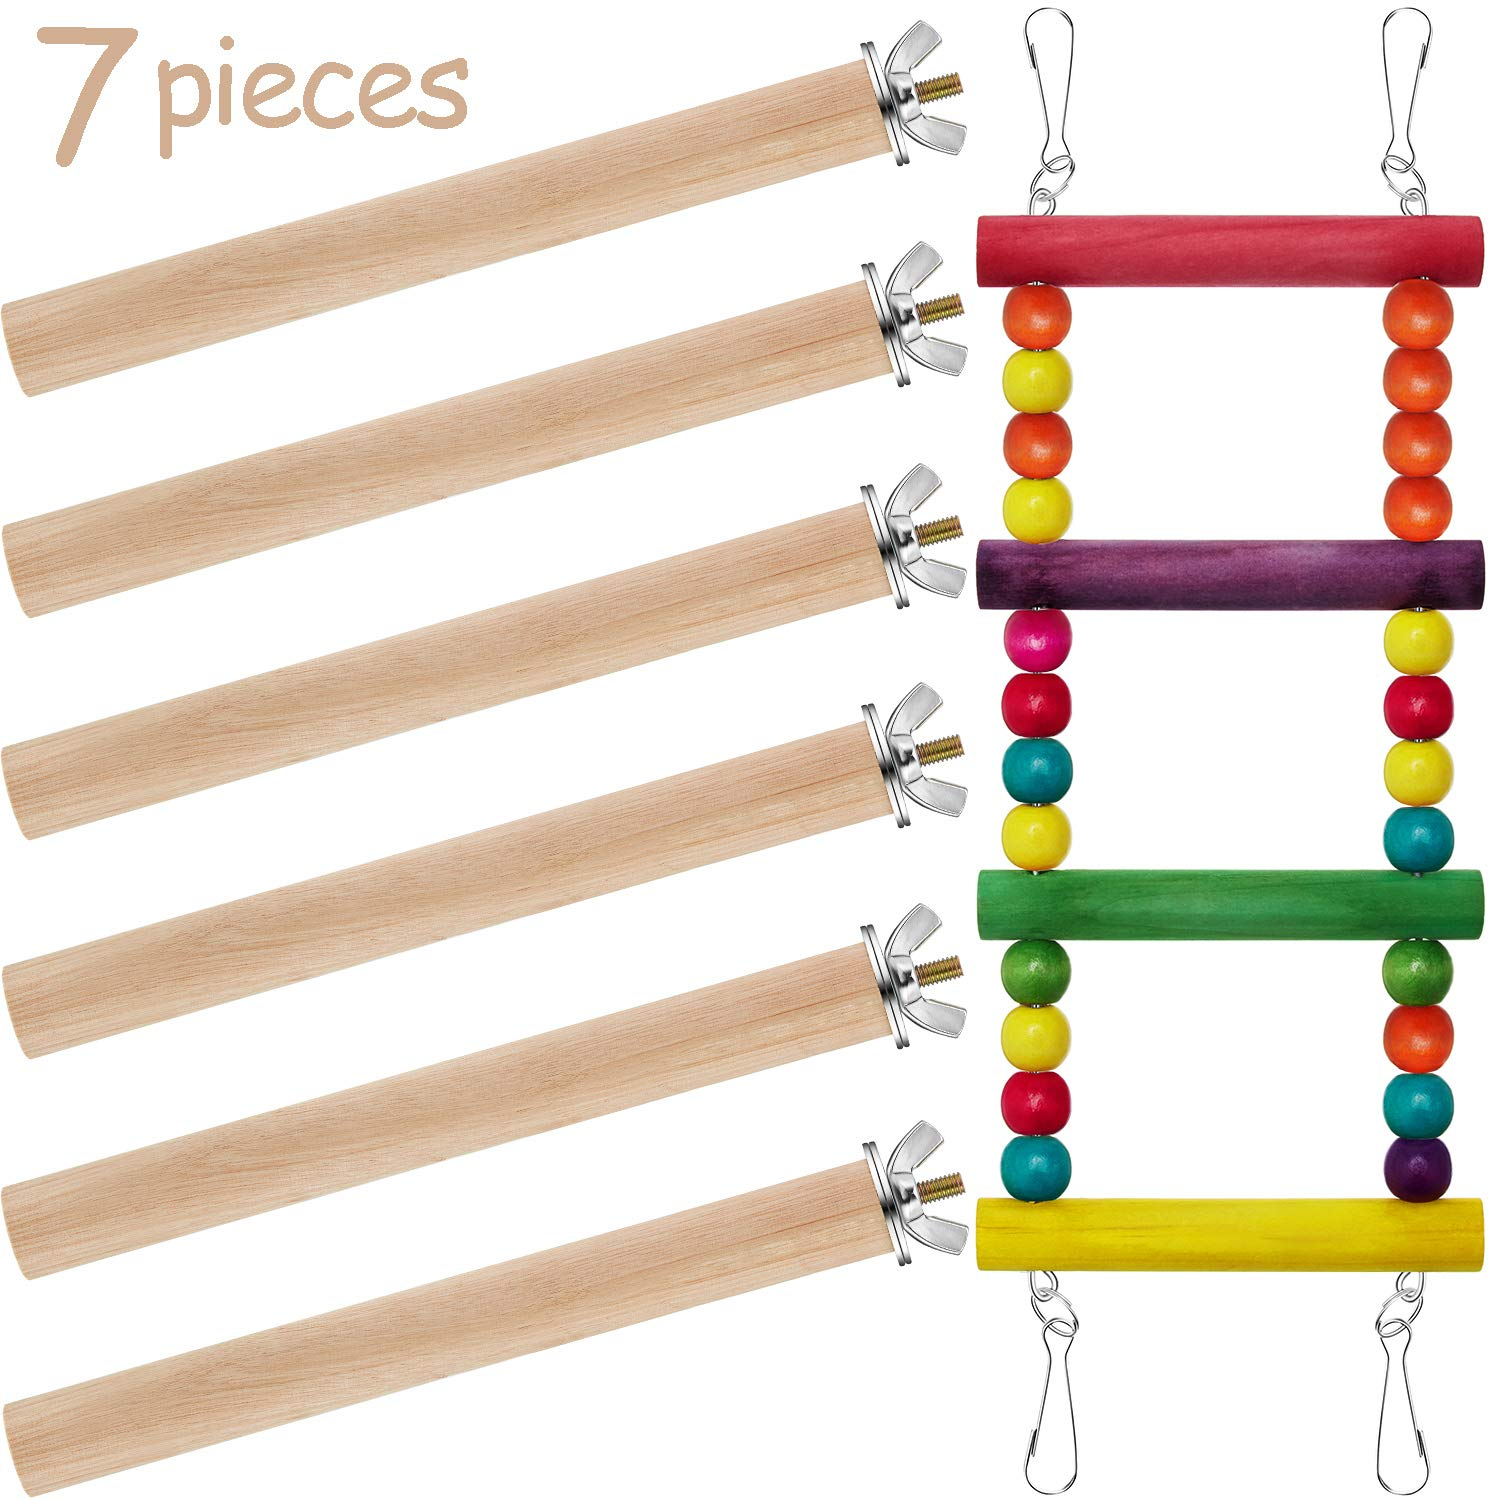 Gejoy Birds Trainning Ladder and 6 Pieces Wood Birds Cage Stand Perch for Pet Training Birds Cage Accessories by Gejoy